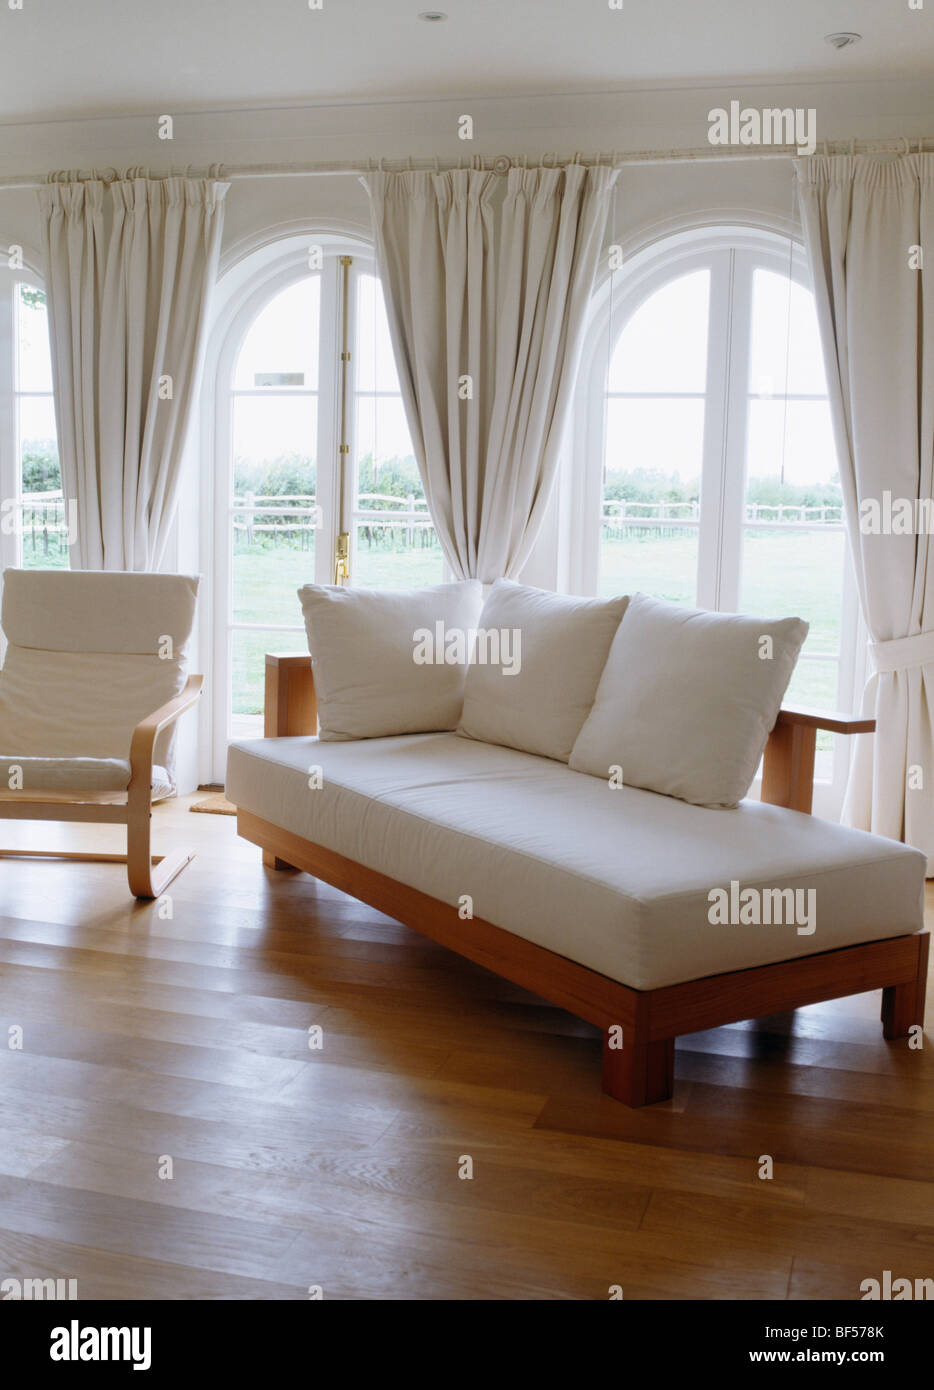 Day Bed With White Cushions In Living Room With Wooden